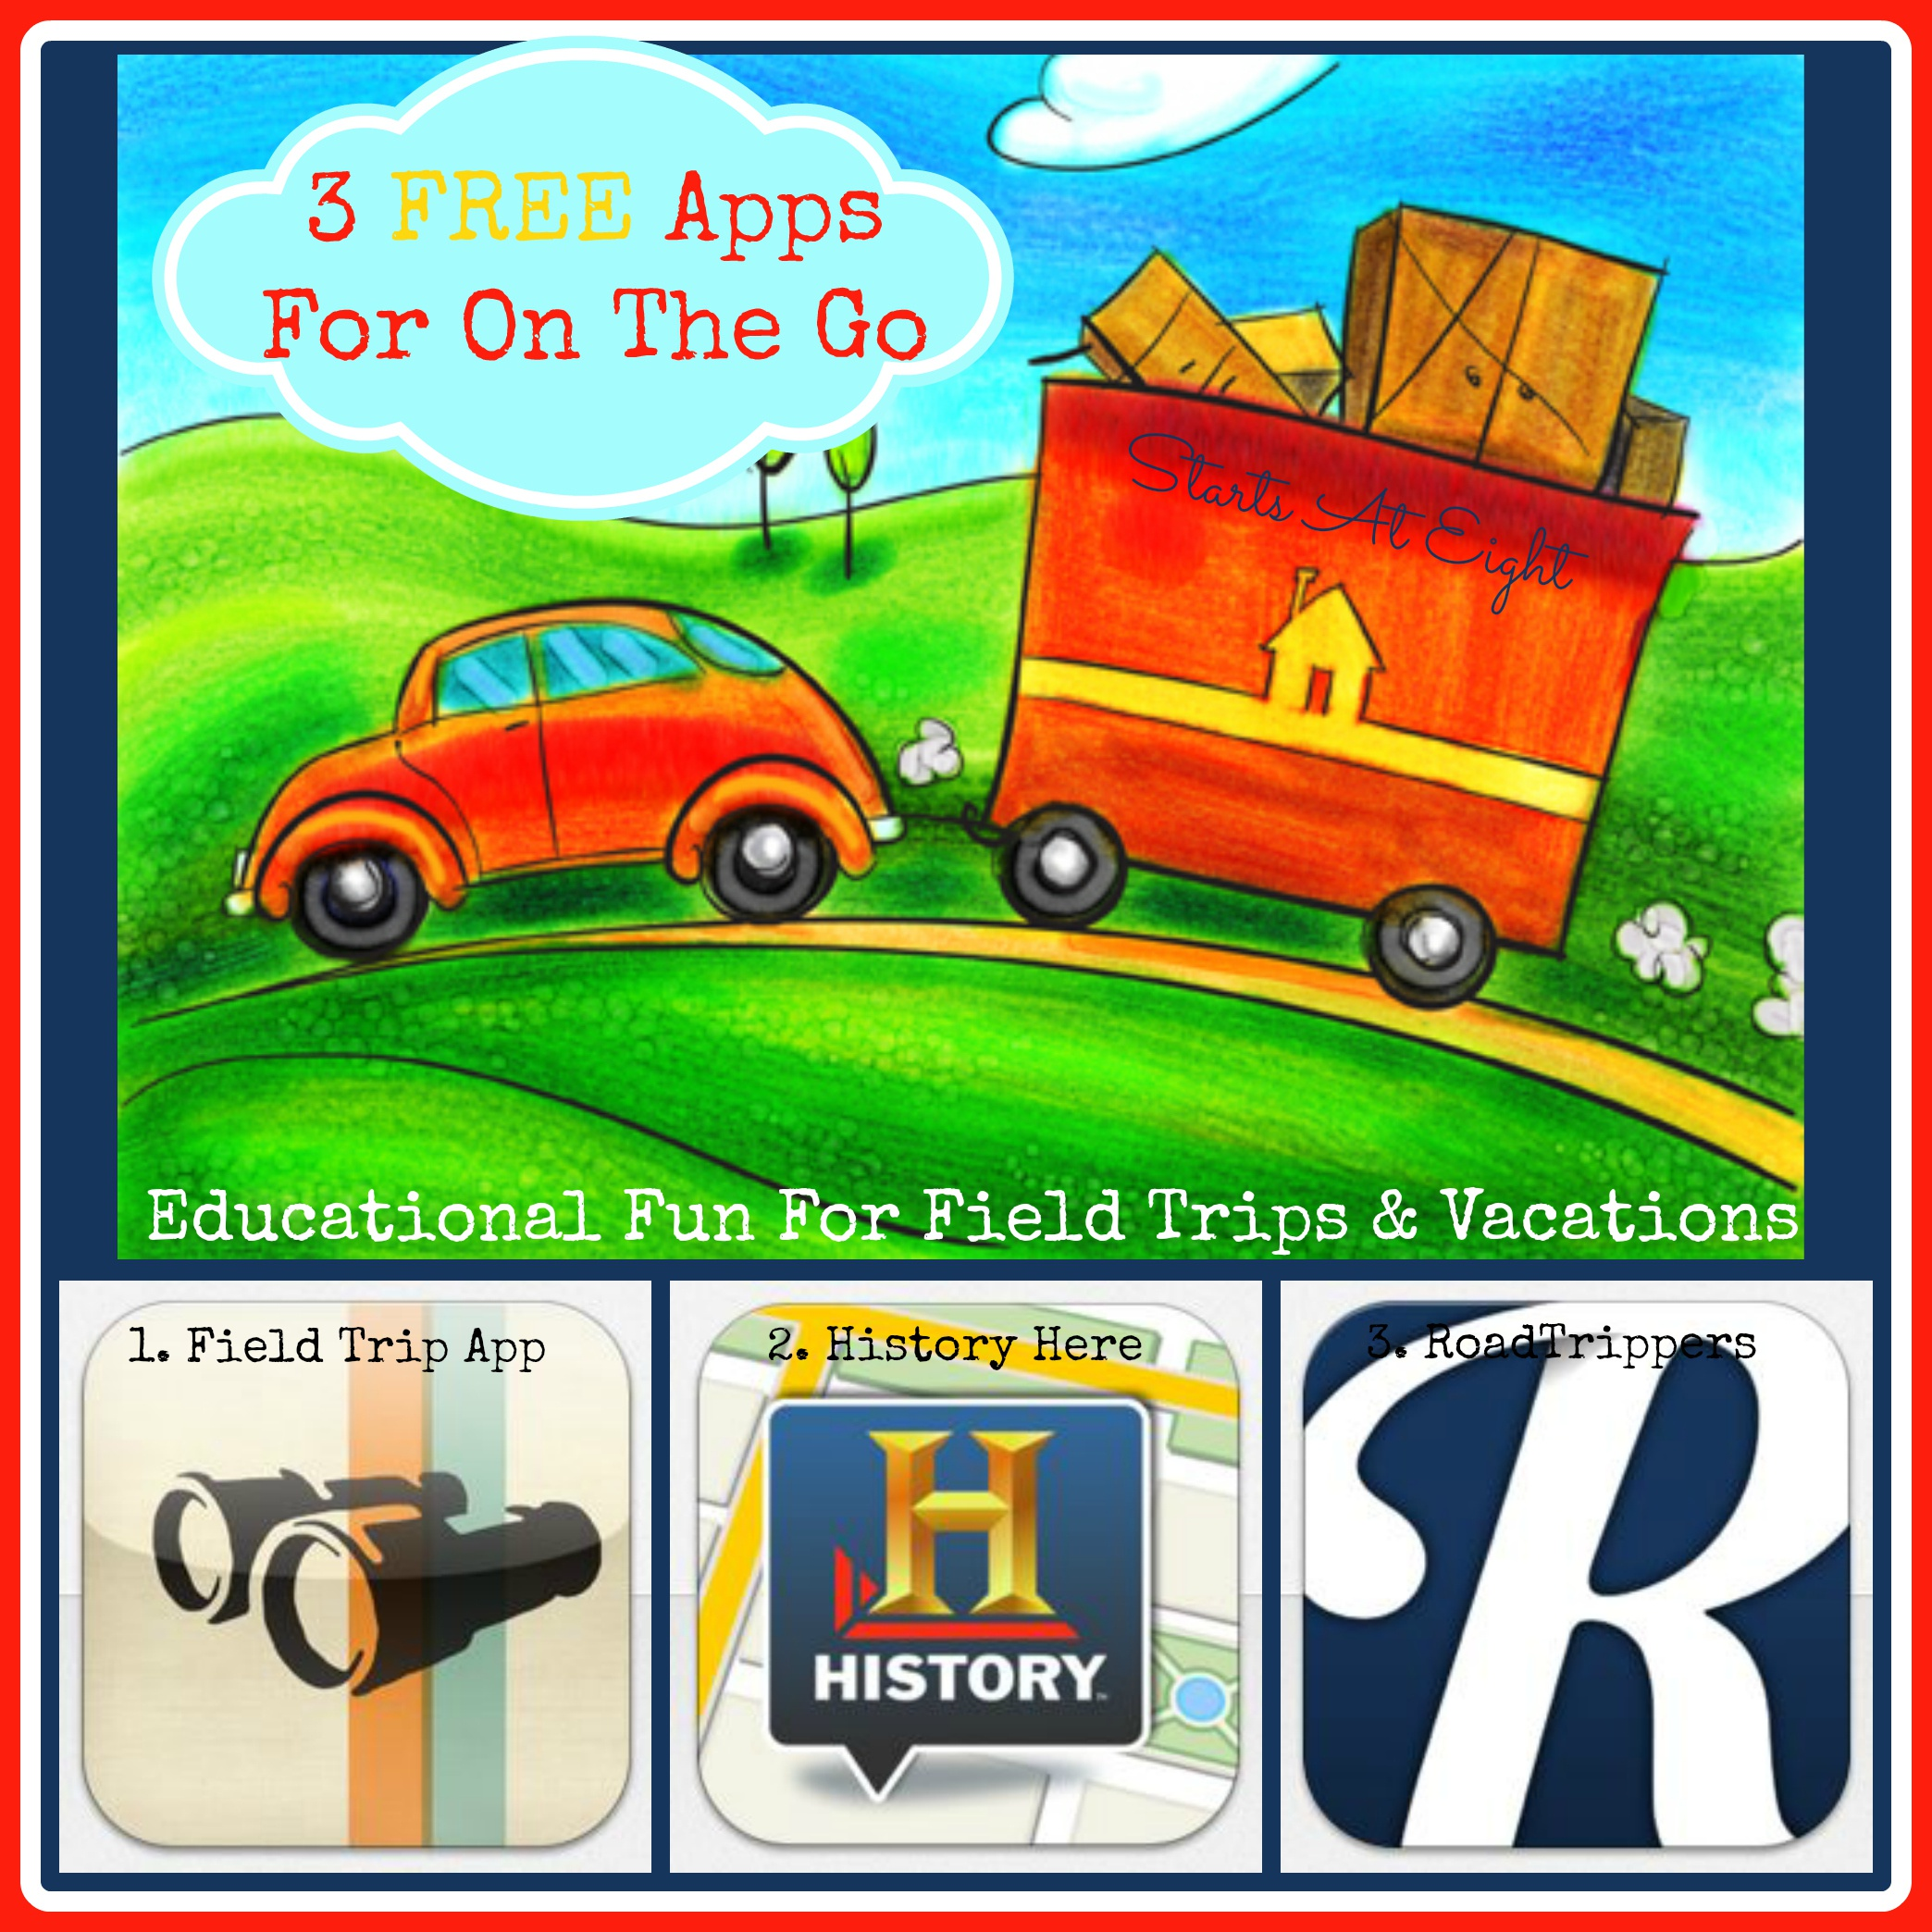 3 FREE Apps For On The Go: Educational Fun For Field Trips & Vacations